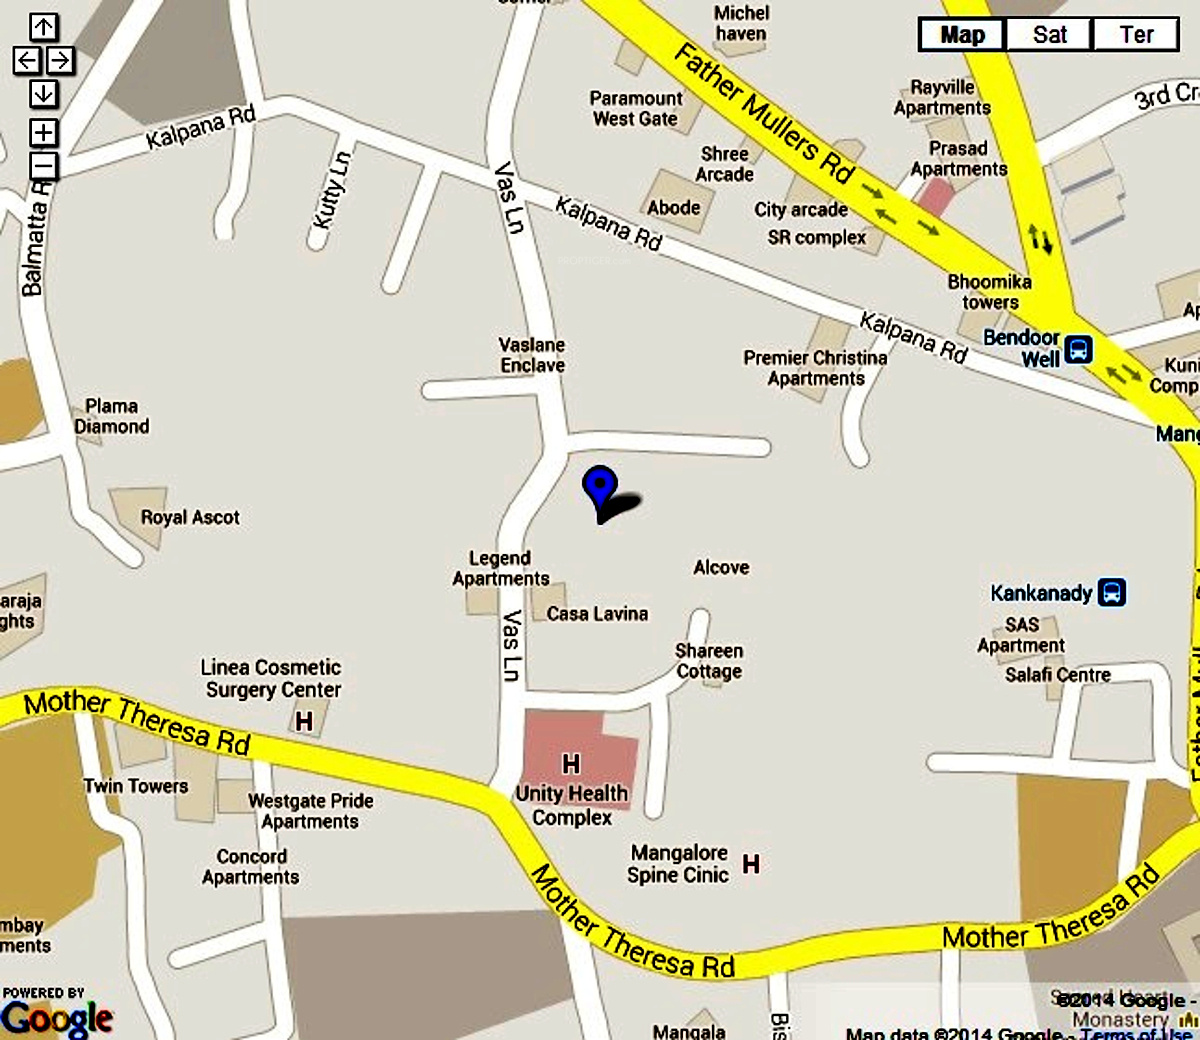 Apartments By Location: Citadel Jade Apartments In Kankanady, Mangalore